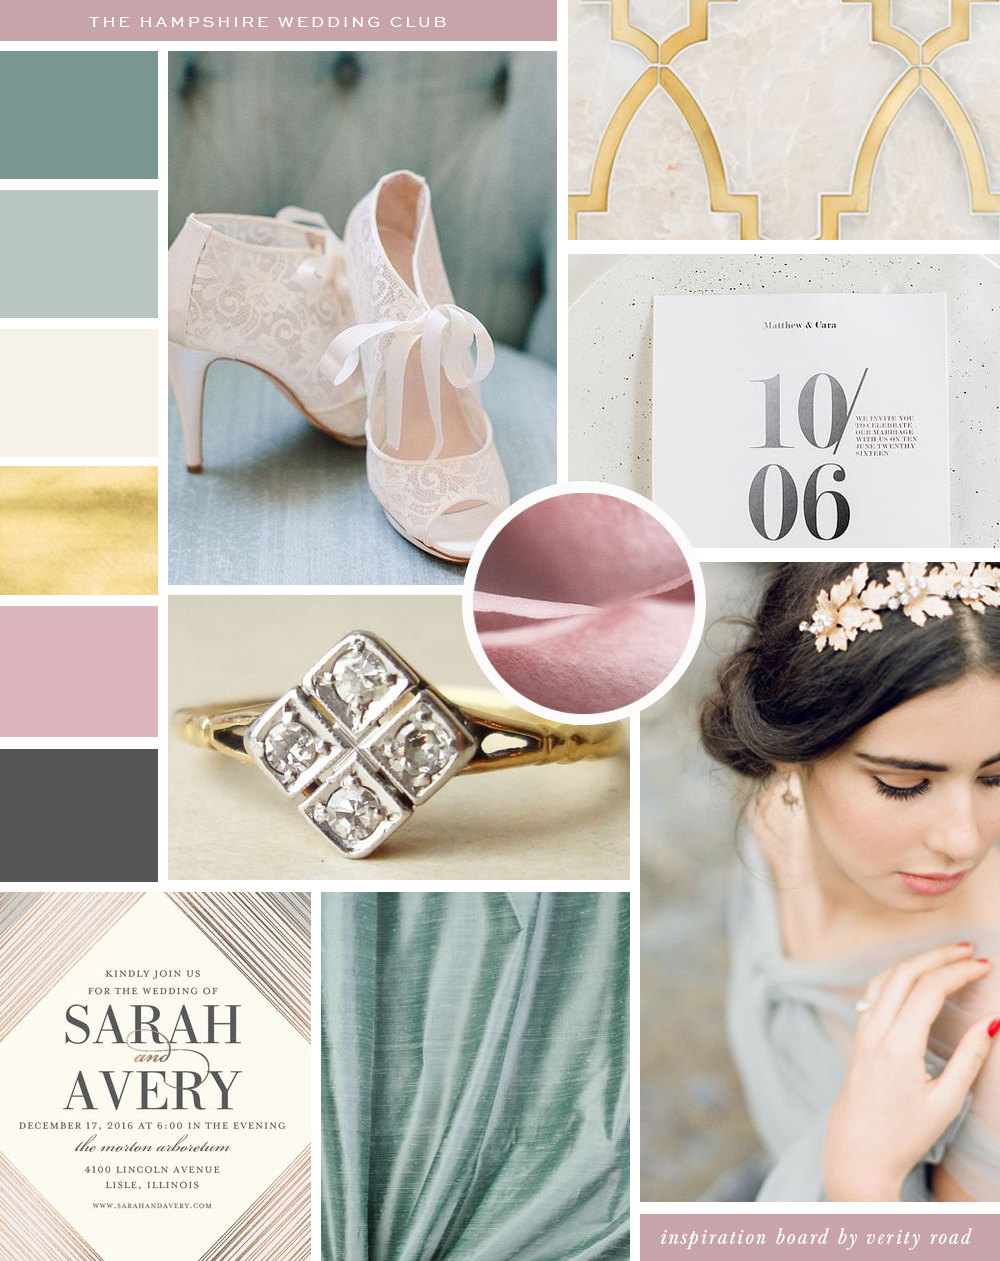 Mood board for the hampshire wedding club, wedding professionals, wedding suppliers wedding photographerss, wedding planners, florists. Luxury branding, feminine branding, feminine business, brand styling & web design for female entrepreneurs. Inspiration board font CHARCOAL, DUSTY ROSE, TEAL, MUTED MINT, gold, color palette, LUXURY WEDDING, ELEGANT HIGH-END ROMANCE, business owner, blogger, watercolor. See more for brand board, brand style guide, social media branding .